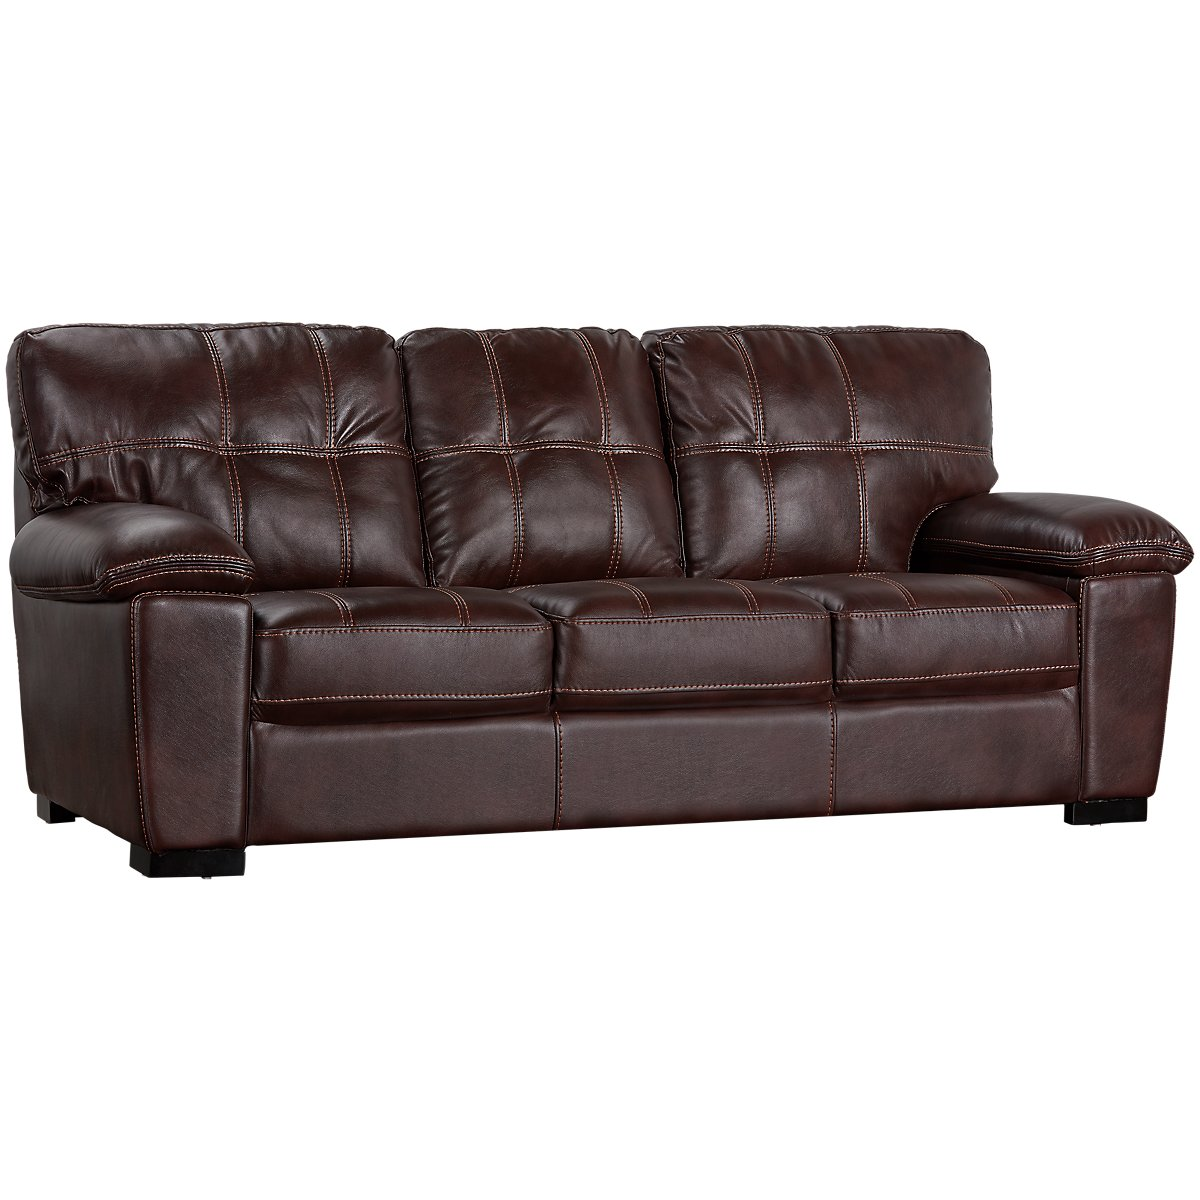 Henry Dark Brown Microfiber Sofa | Living Room - Sofas | City Furniture